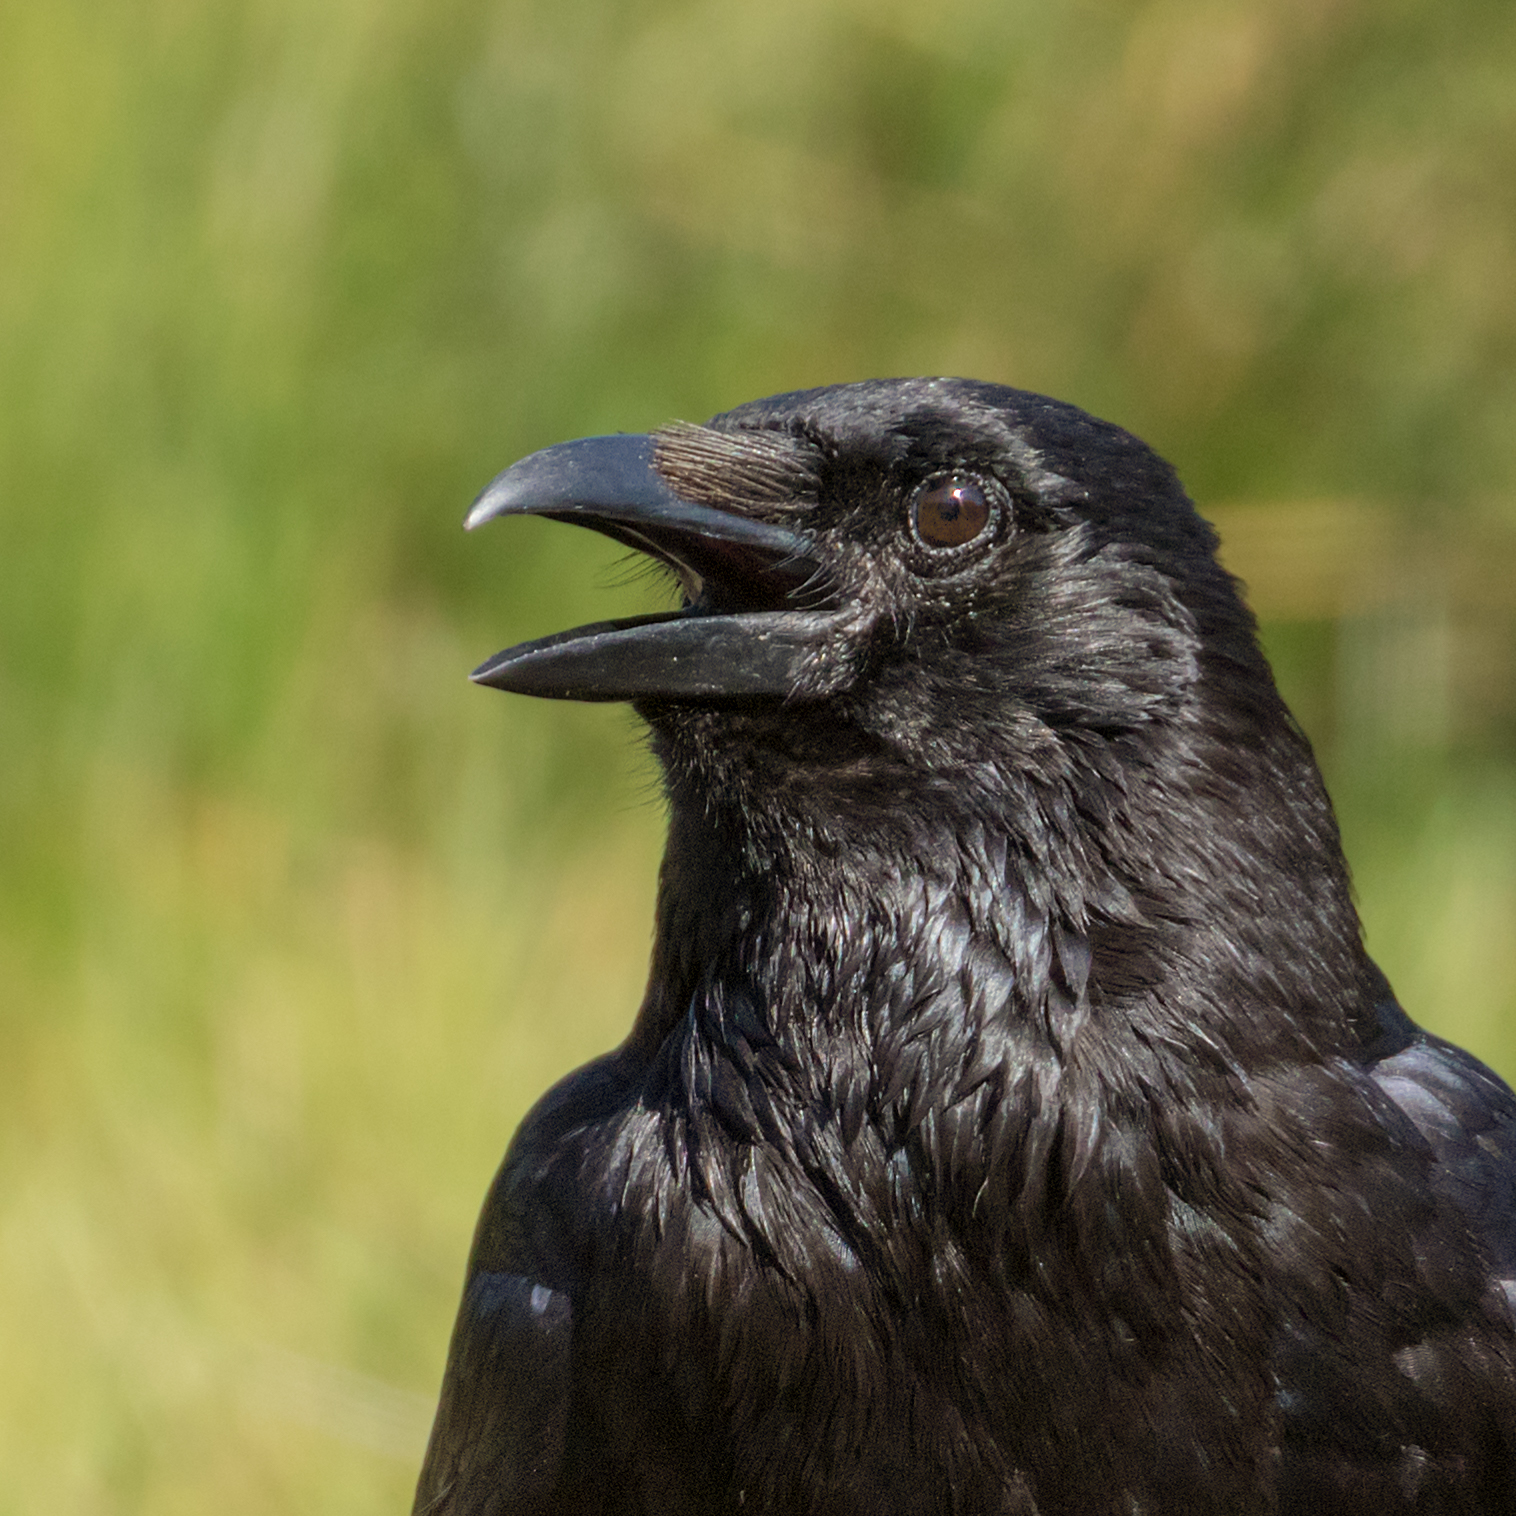 Carrion Crow #2